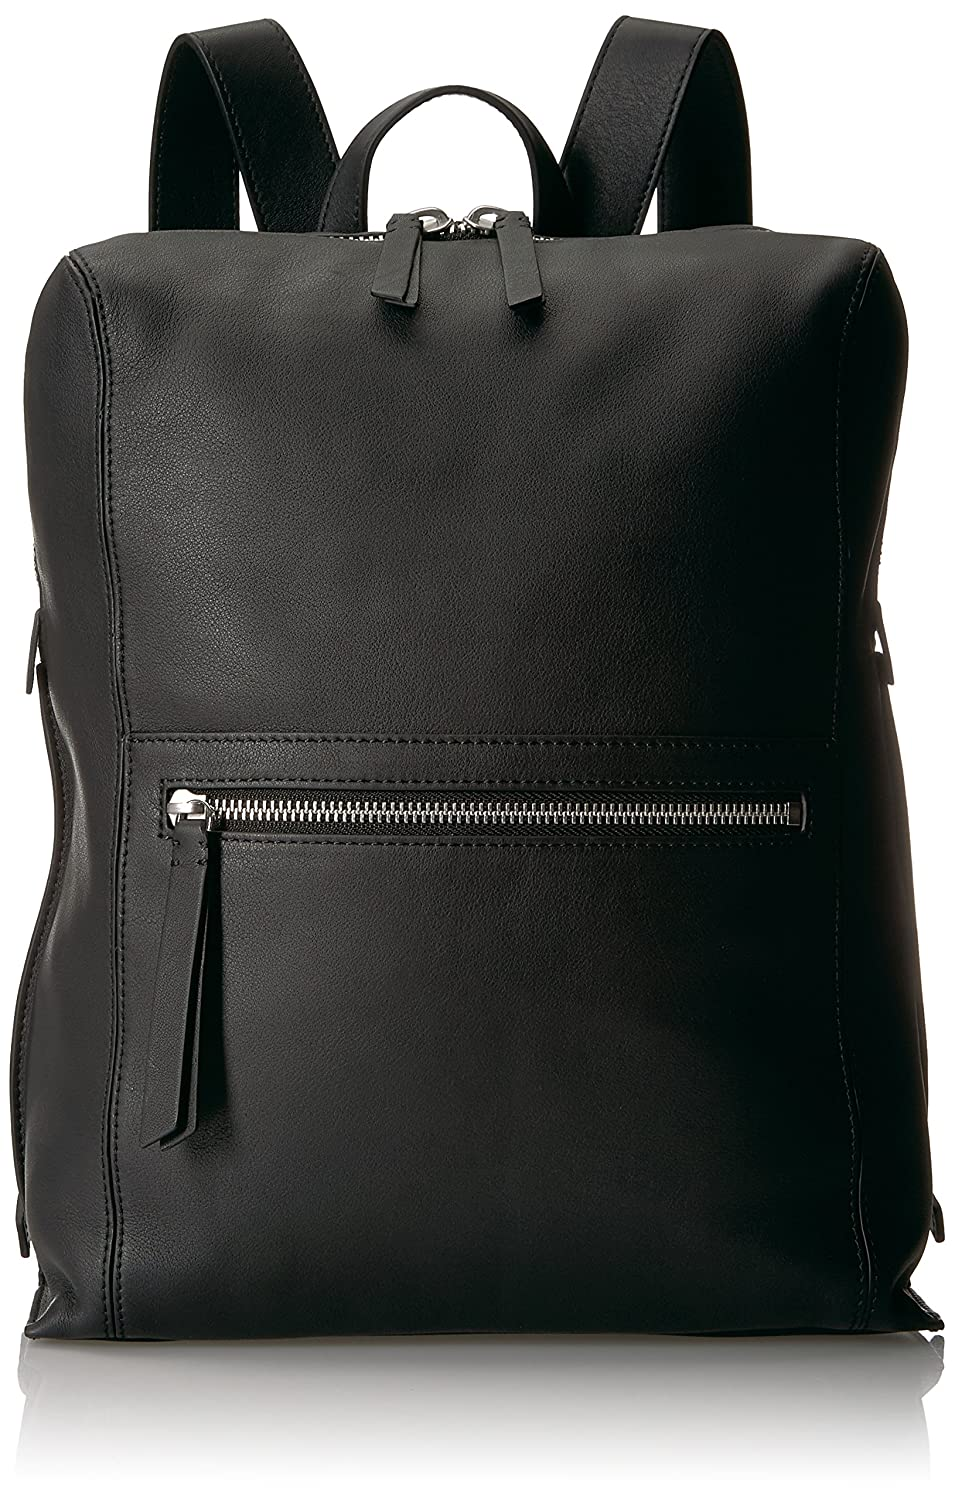 [エコー] Sculptured Backpack SCULPTURED 9105168 B071YLZFLSブラック